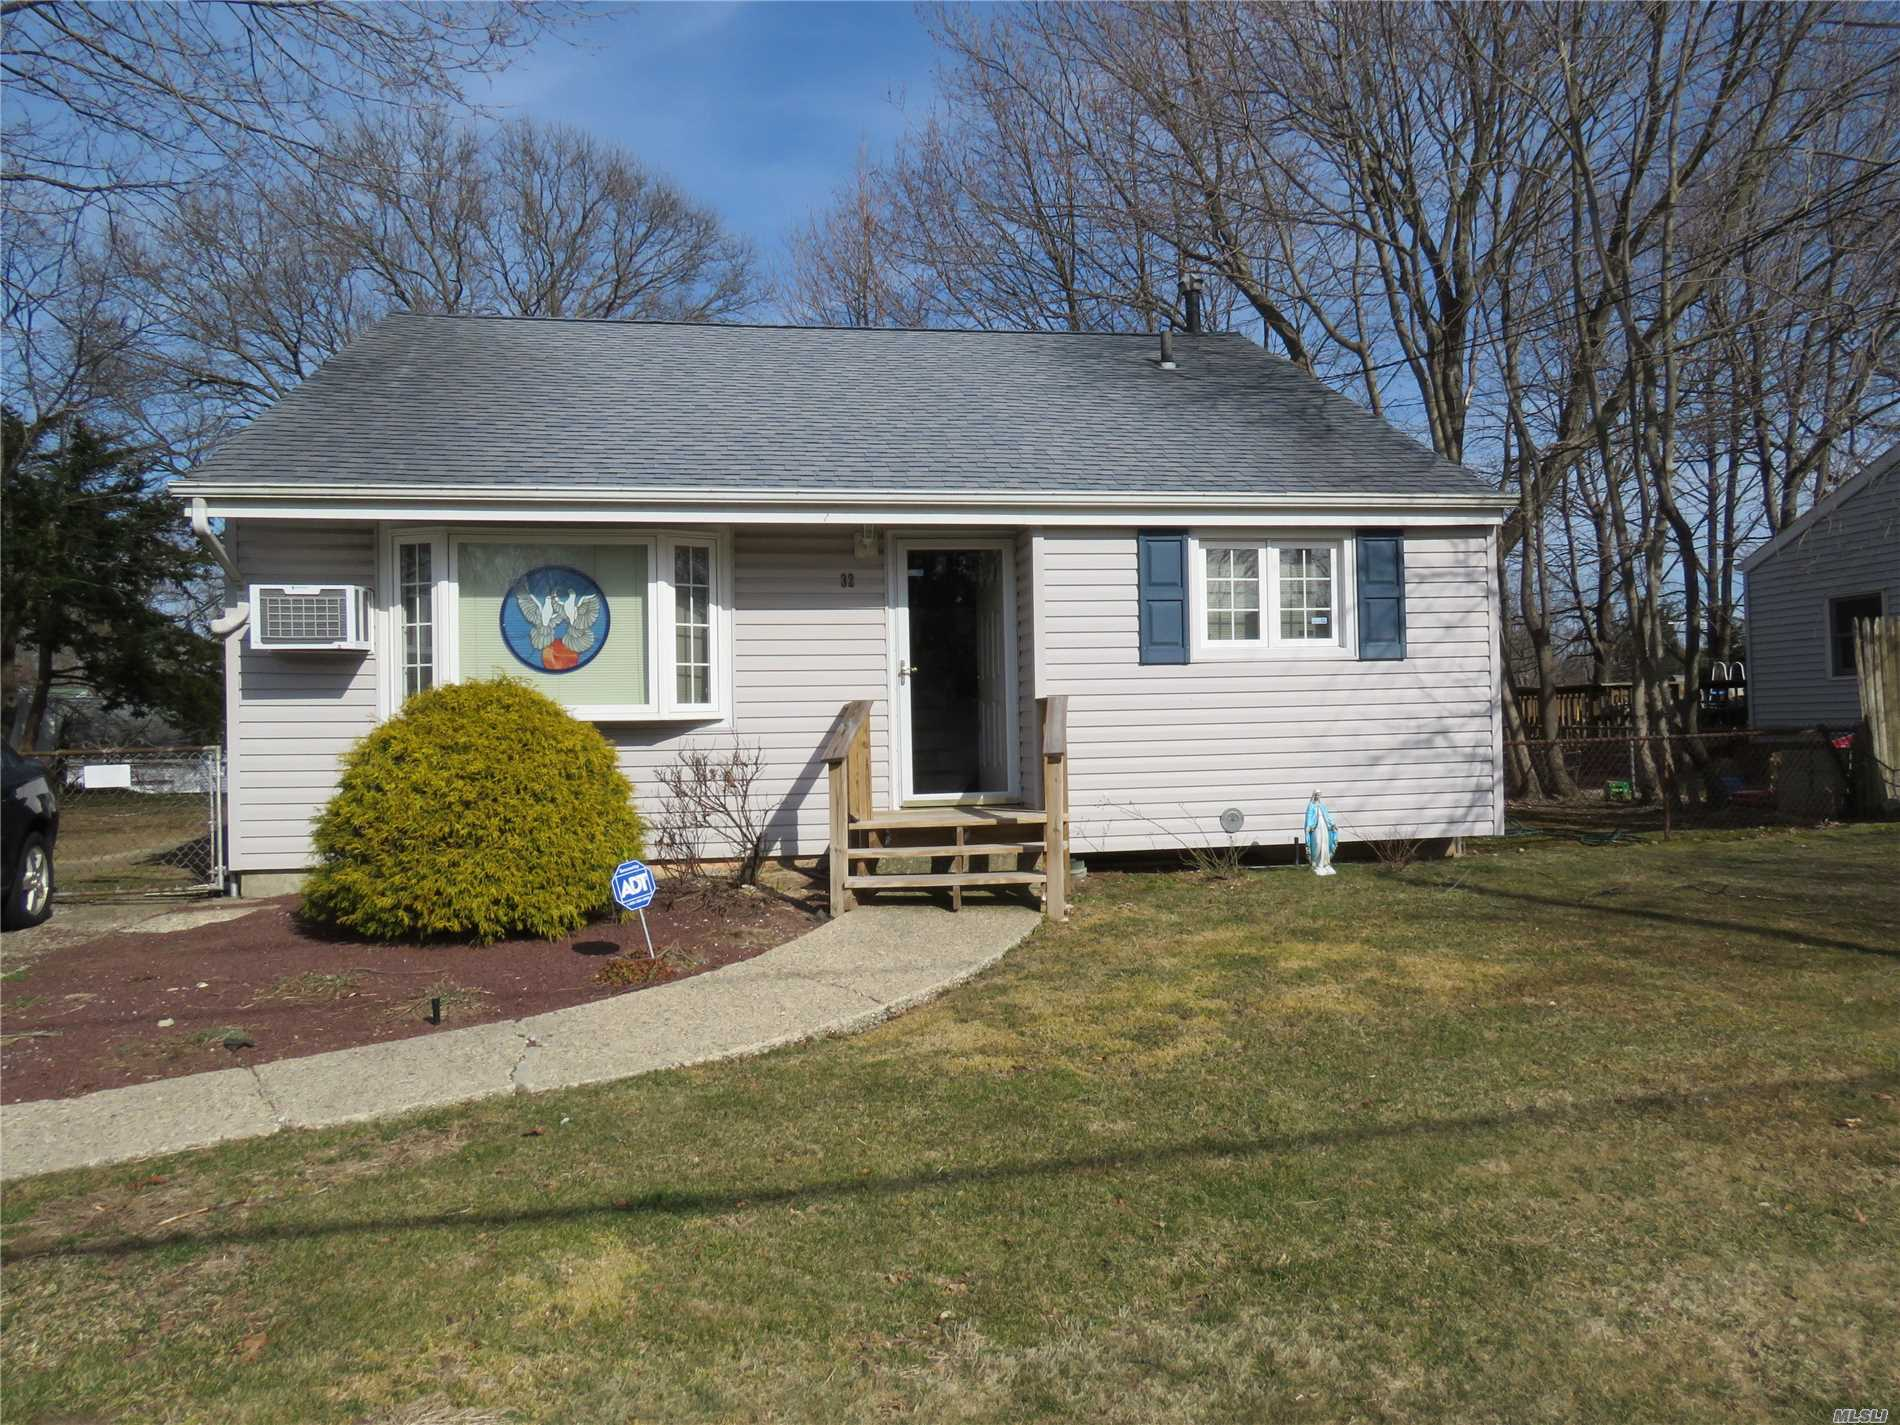 Perfect Starter Home. 3 Bedroom 1.5 Bath Split Level Ranch. New Roof,  All New Windows, New Siding. EIK w/ New Flooring and some new cabinetry. New Full Bathroom w/ Glass enclosed Tiled Shower & Granite Vanity. Hardwood Flooring through out. Newer Gas Furnace and Hot Water Heater. Fenced Yard. Low Taxes.